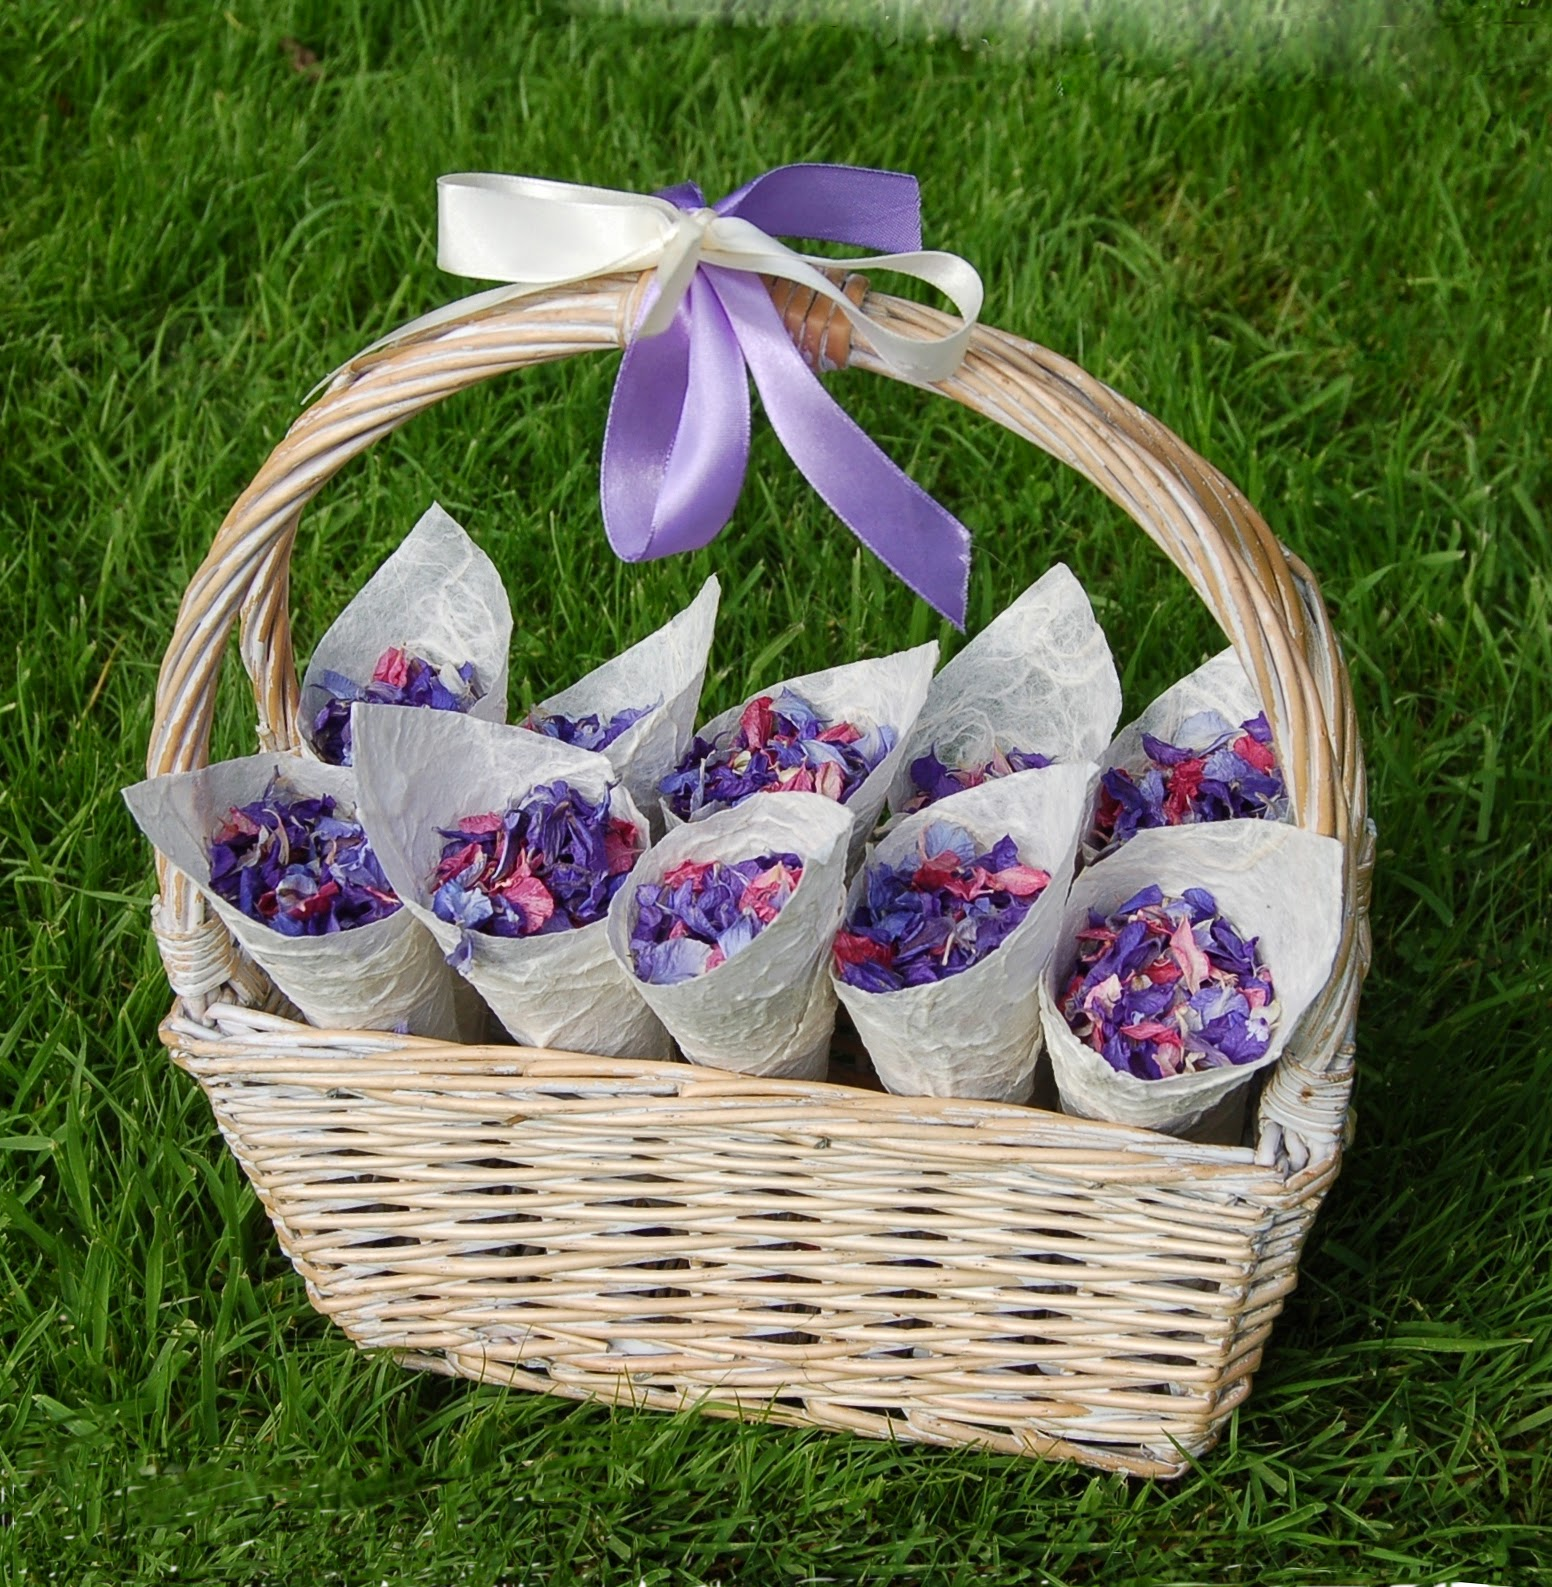 Flower Baskets For Weddings Uk : The confetti a guide to choosing your cones